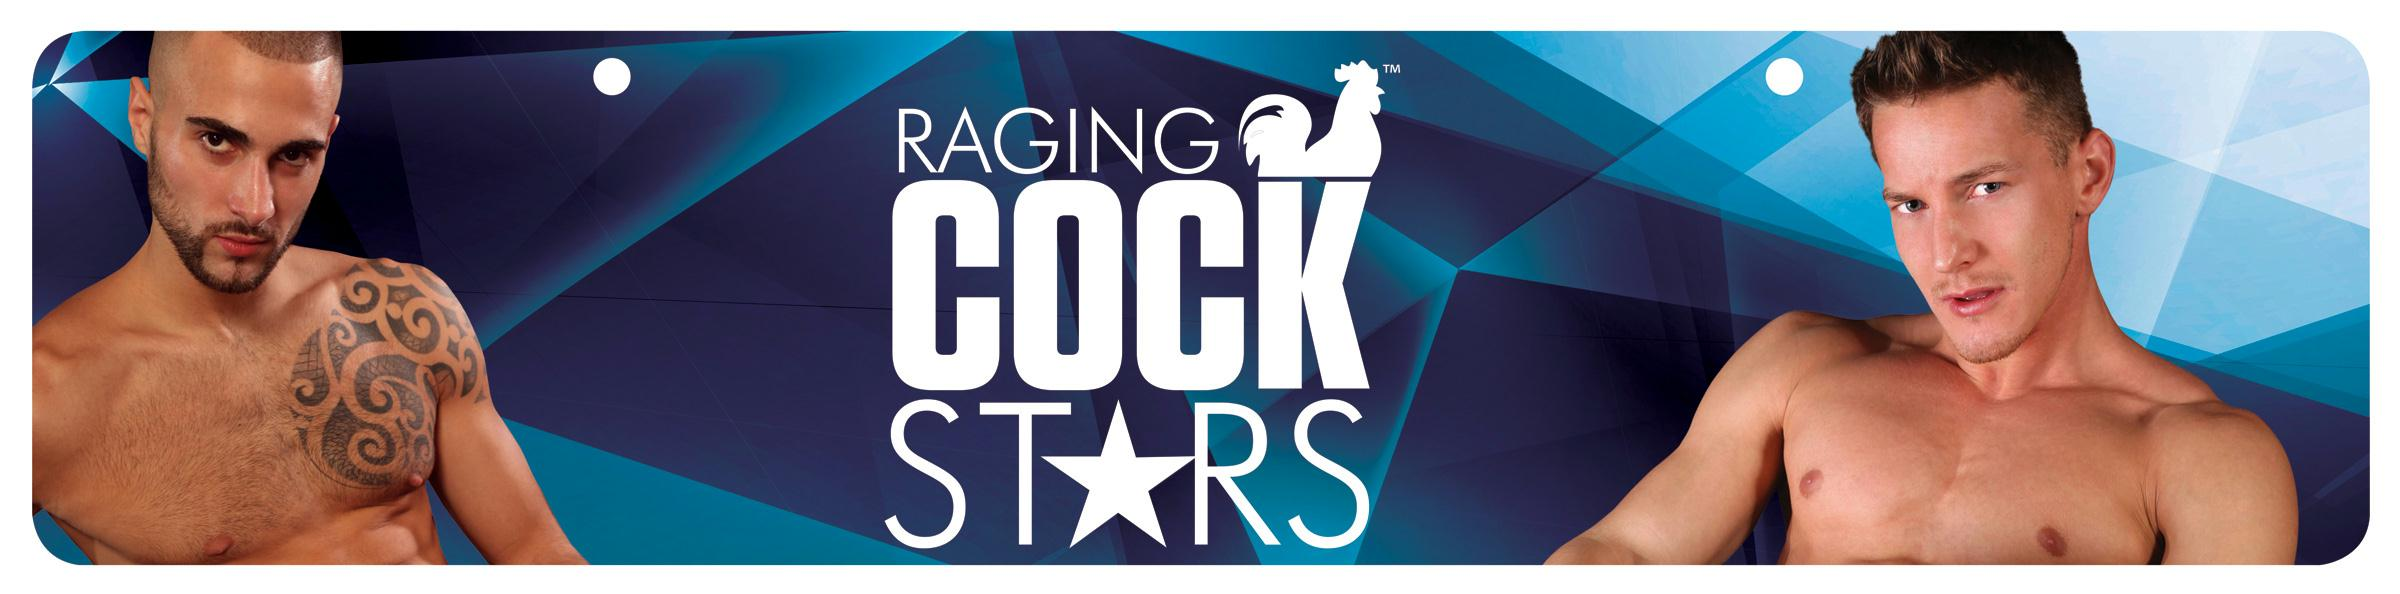 Raging Cockstars Display Sign